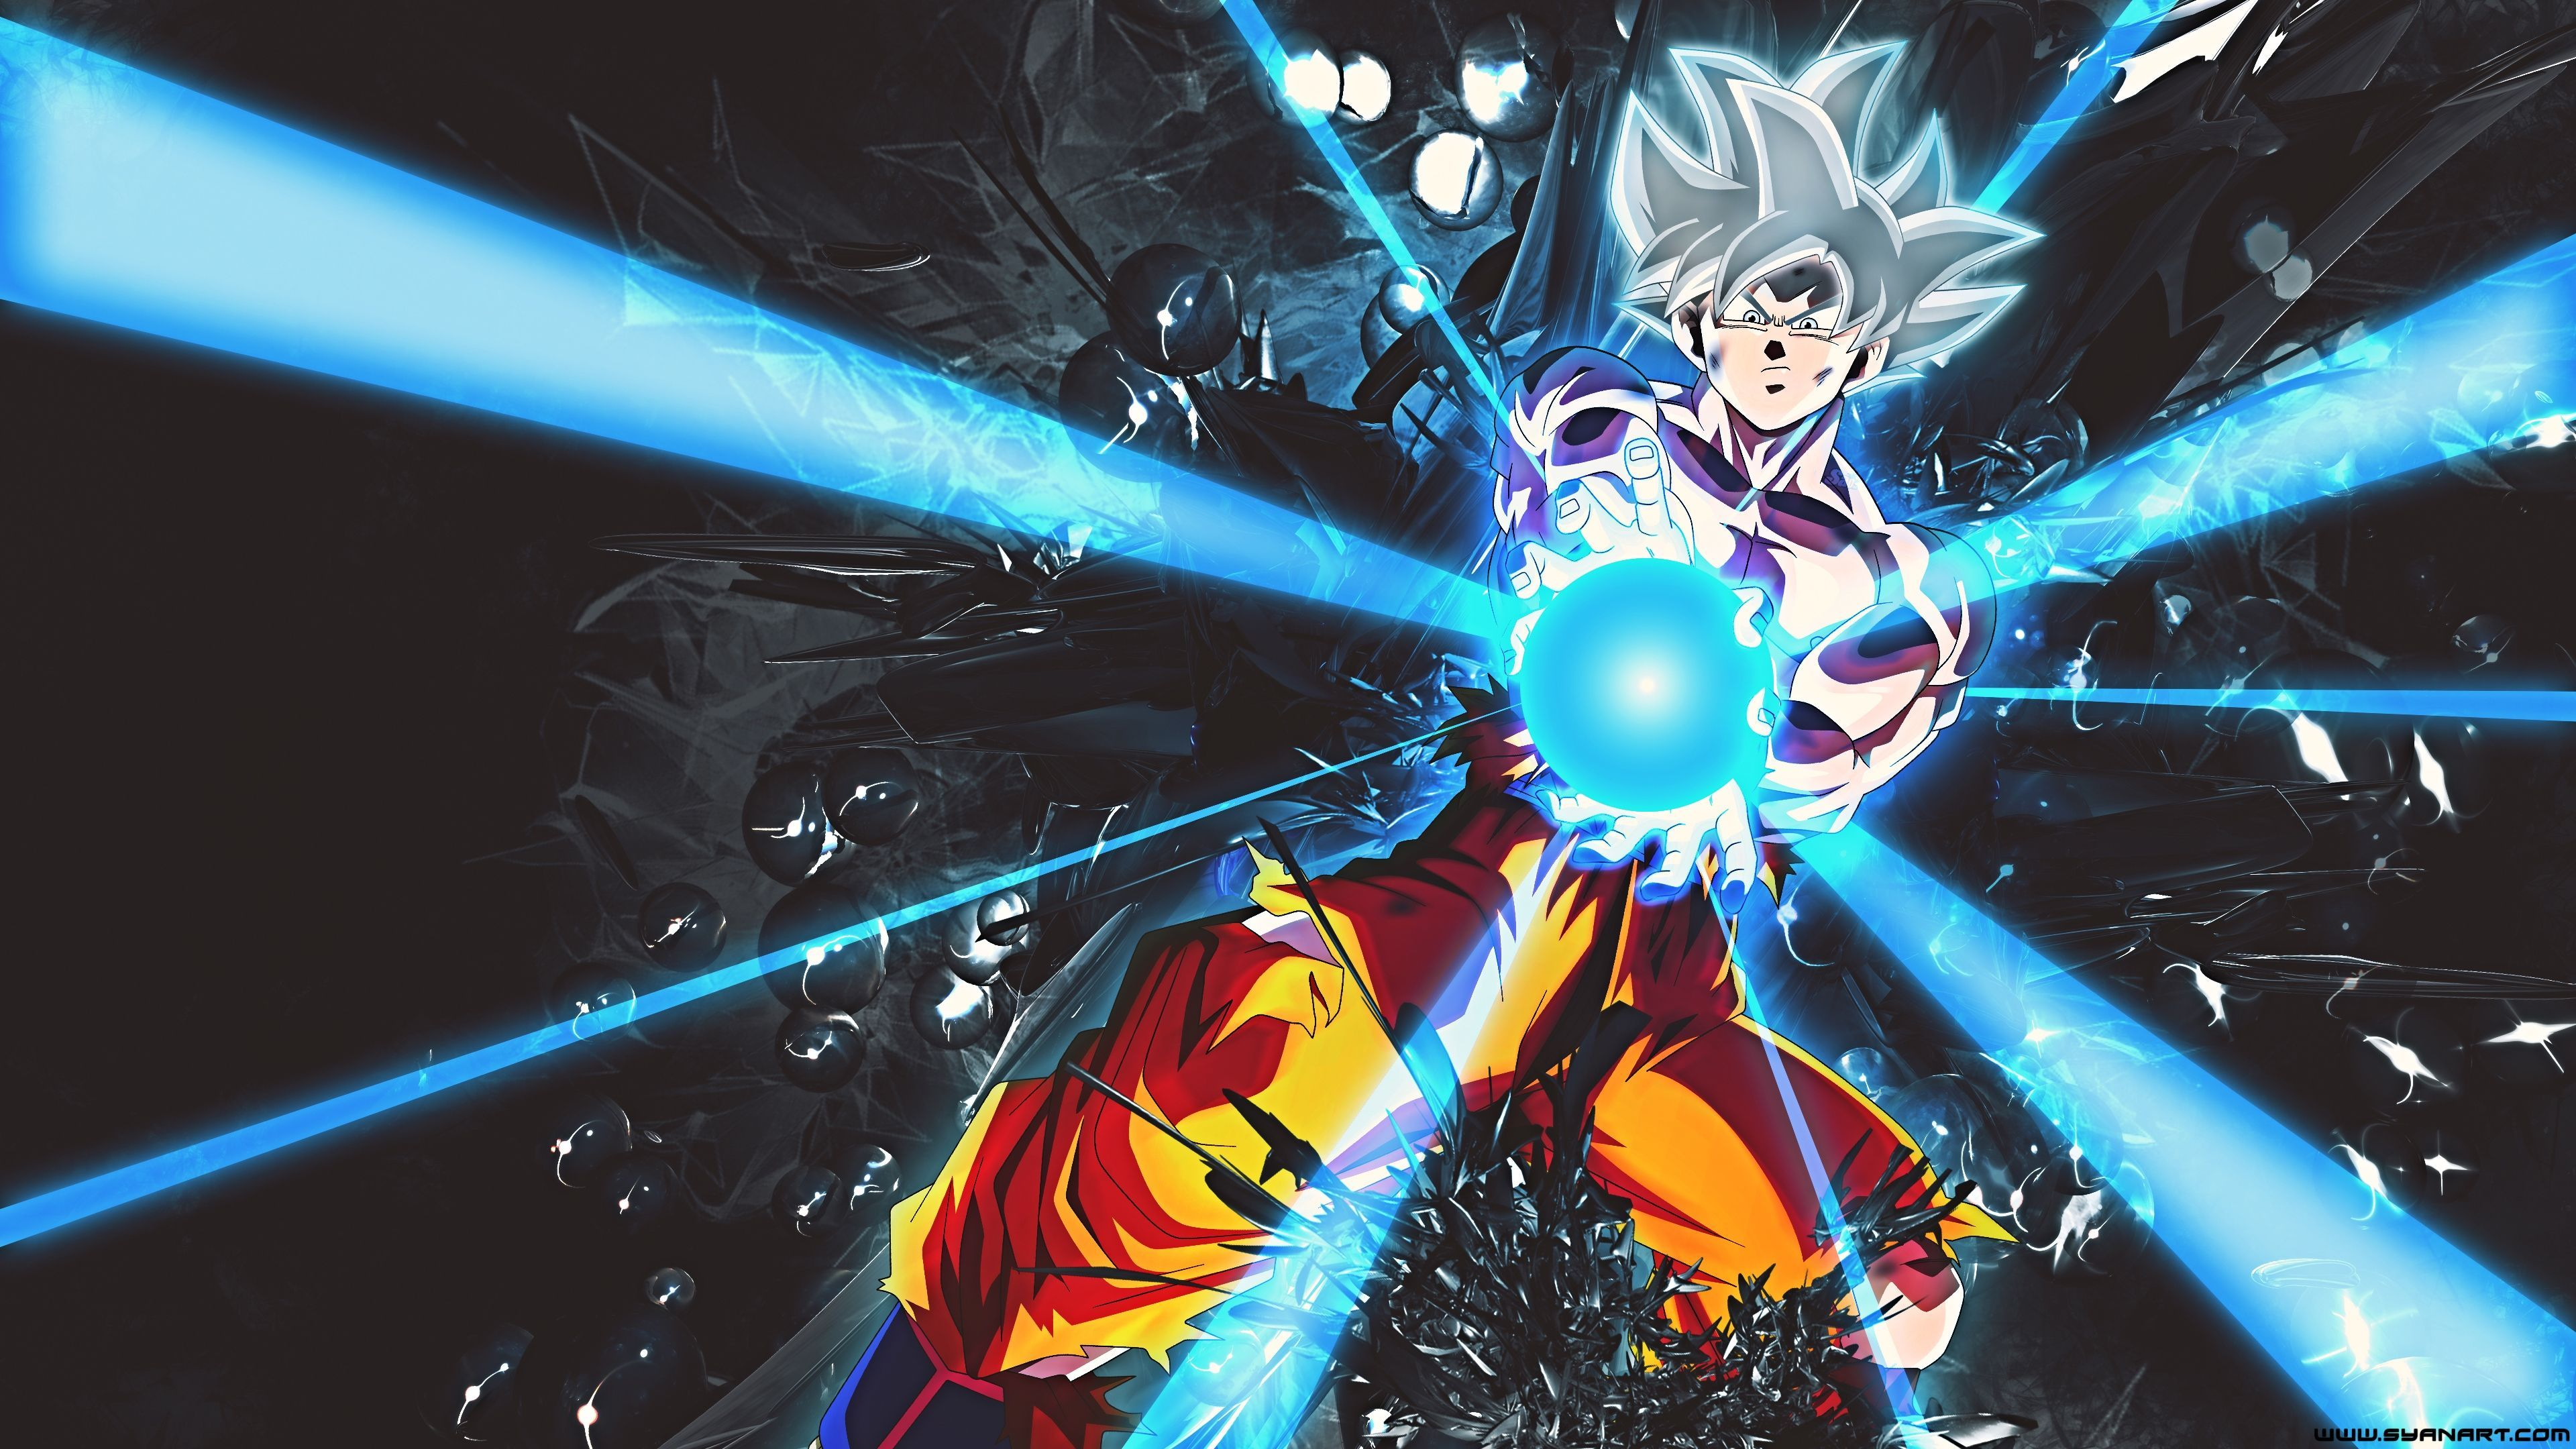 Dragon Ball Z 4k Ultra Hd Wallpaper For Mobile Https Ift Tt 36j93lh In 2020 Dragon Ball Wallpapers Dragon Ball Super Wallpapers Anime Dragon Ball Super